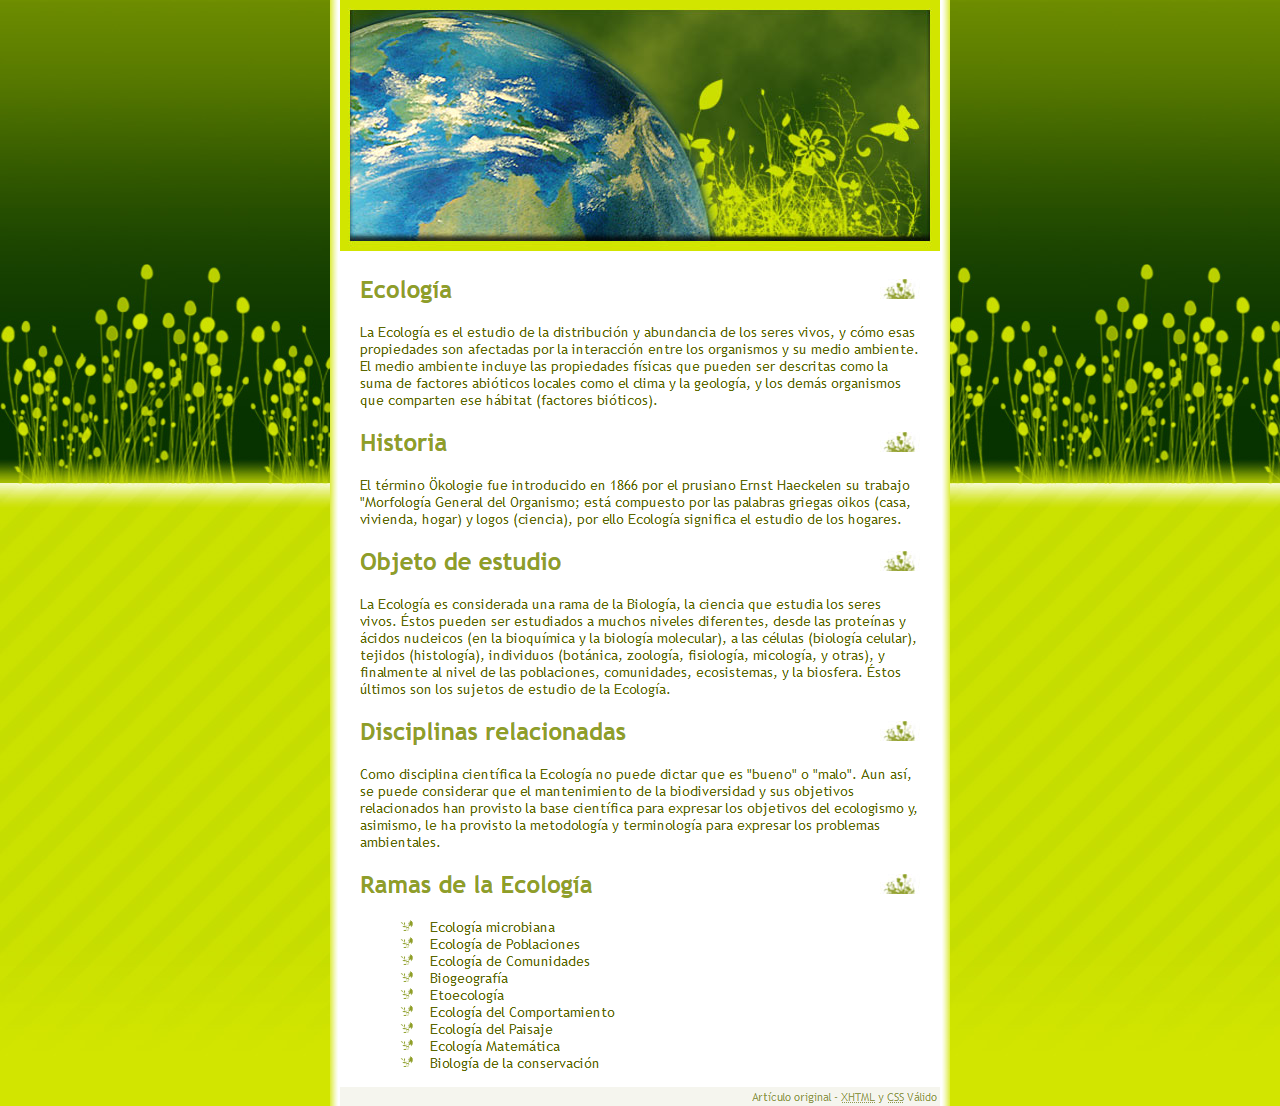 Competencia Xhtml + Css - Forosdelweb - Xhtml 1.0 Strict, Css, Accesibilidad, Photoshop. Año 2007